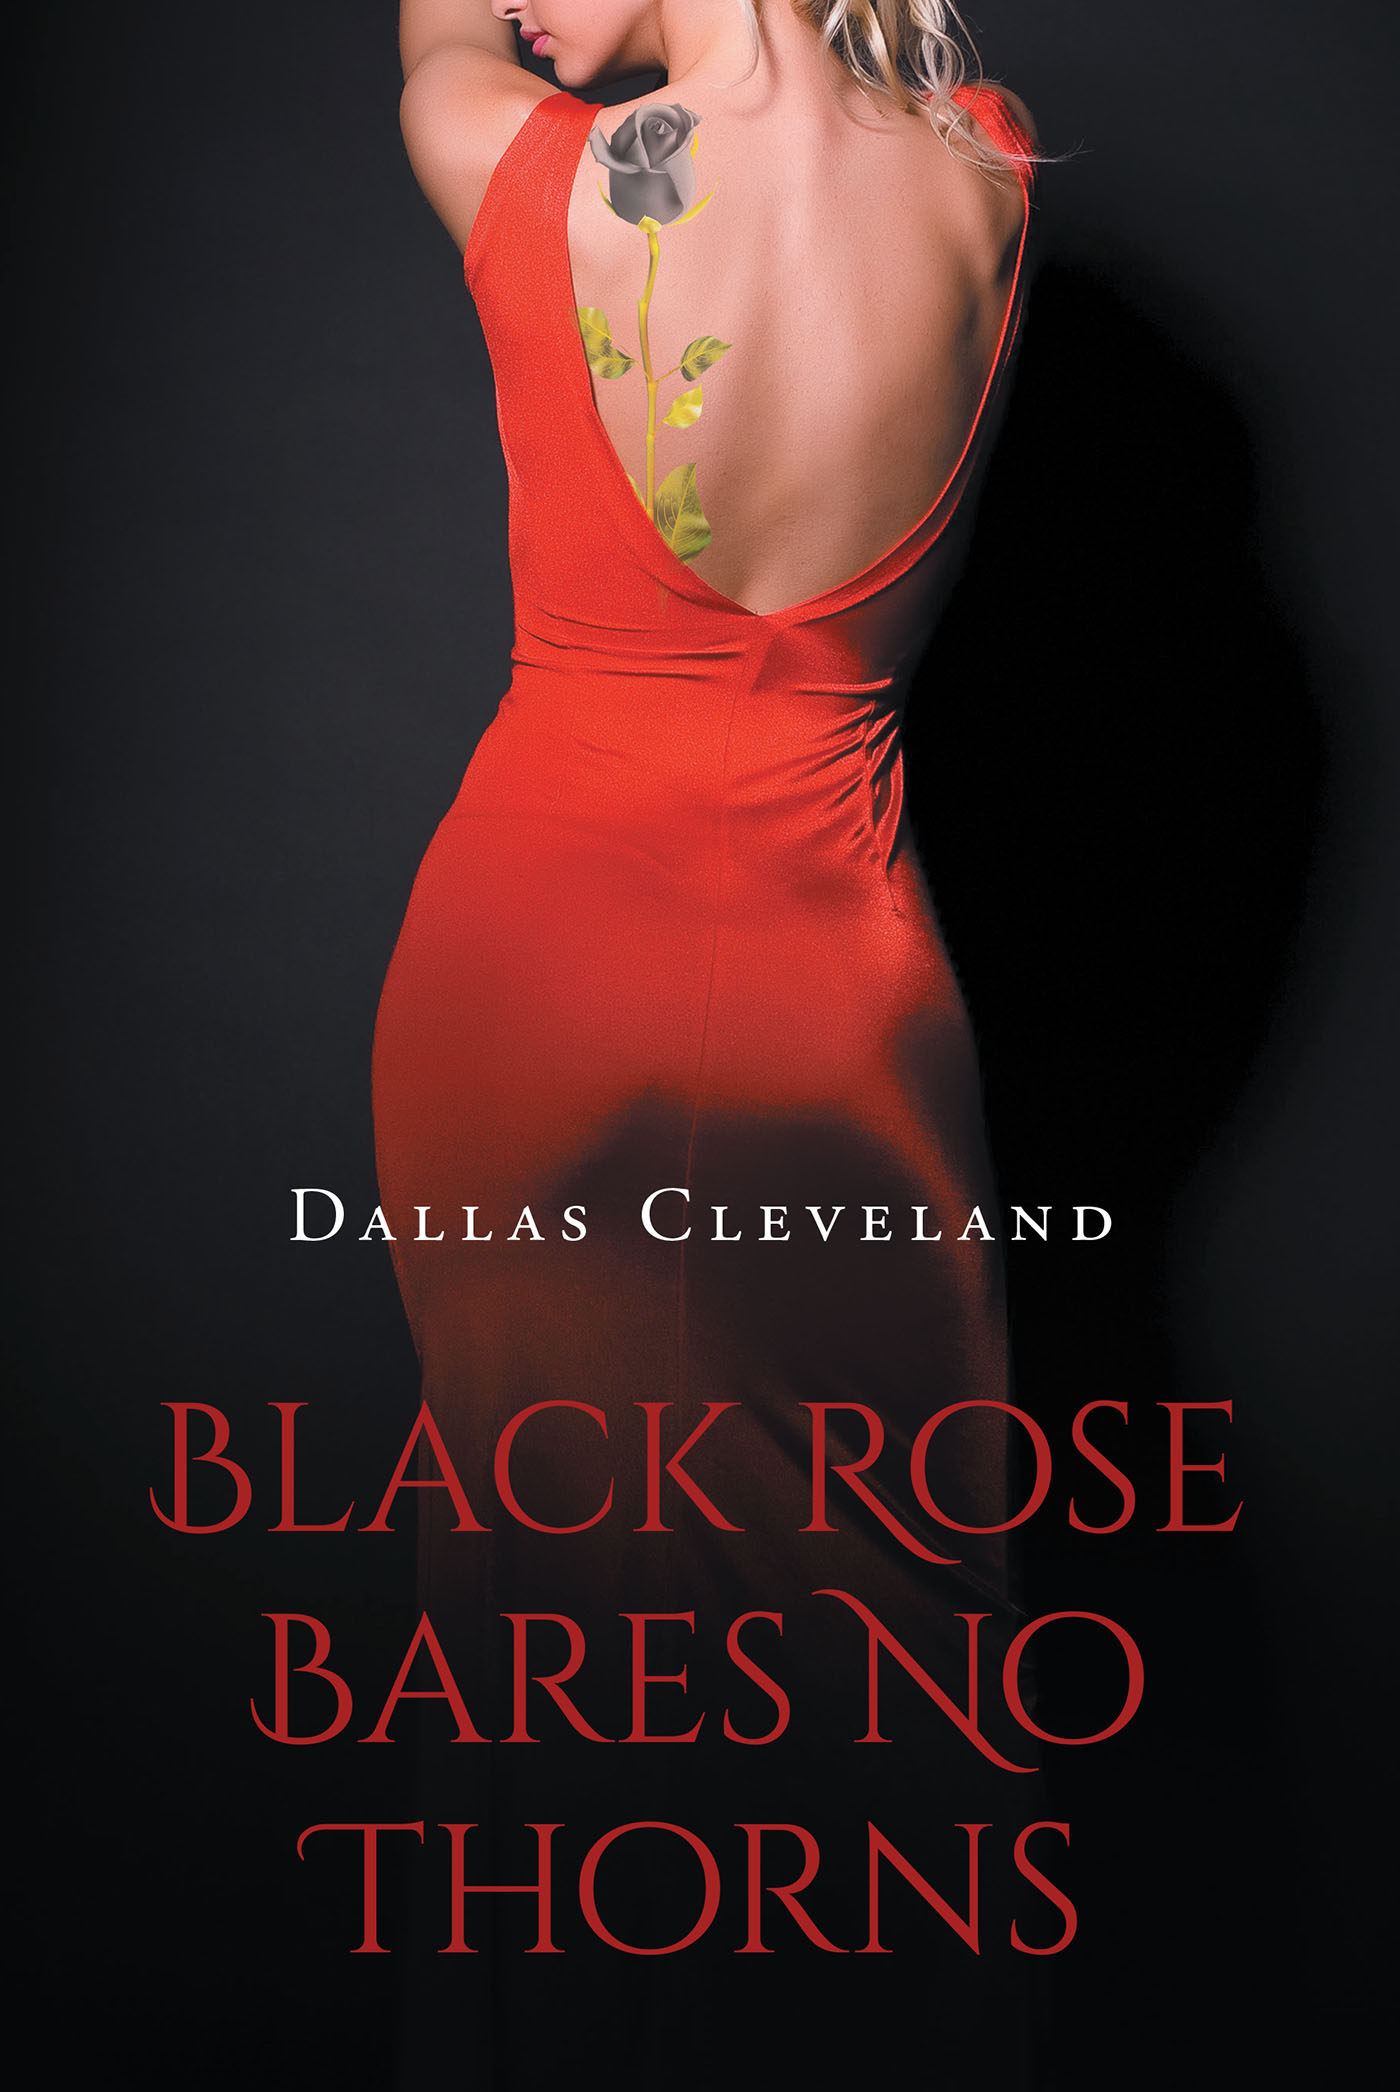 Author dallas clevelands new book black rose bears no thorns is a author dallas clevelands new book black rose bears no thorns is a legal drama centered on the erotic exploits of dexter carrington a prominent defense fandeluxe Images